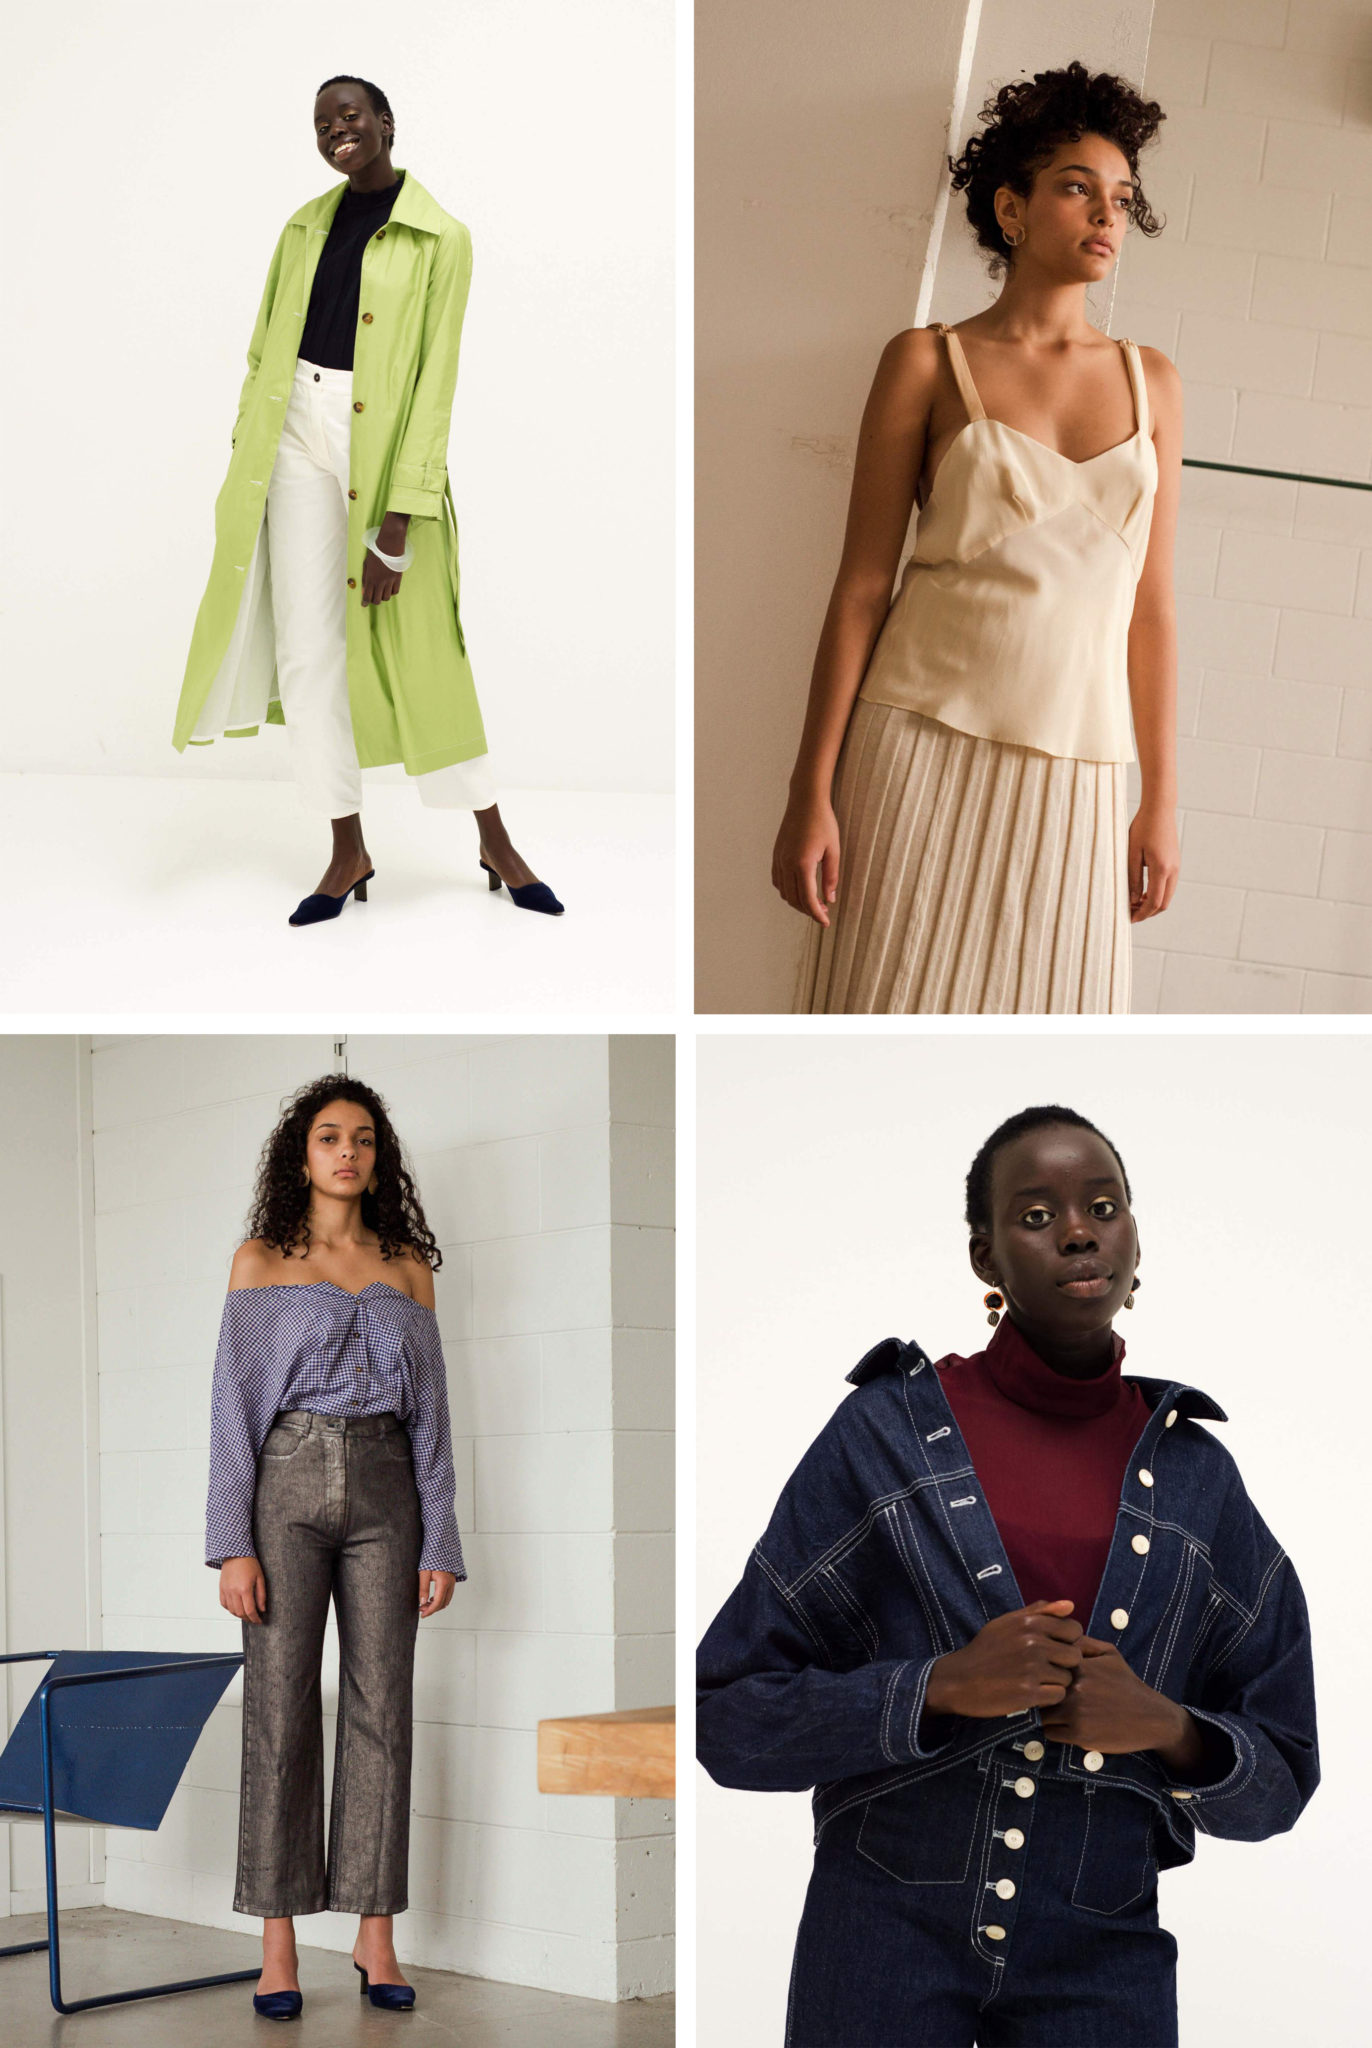 5 new designers you need to know about